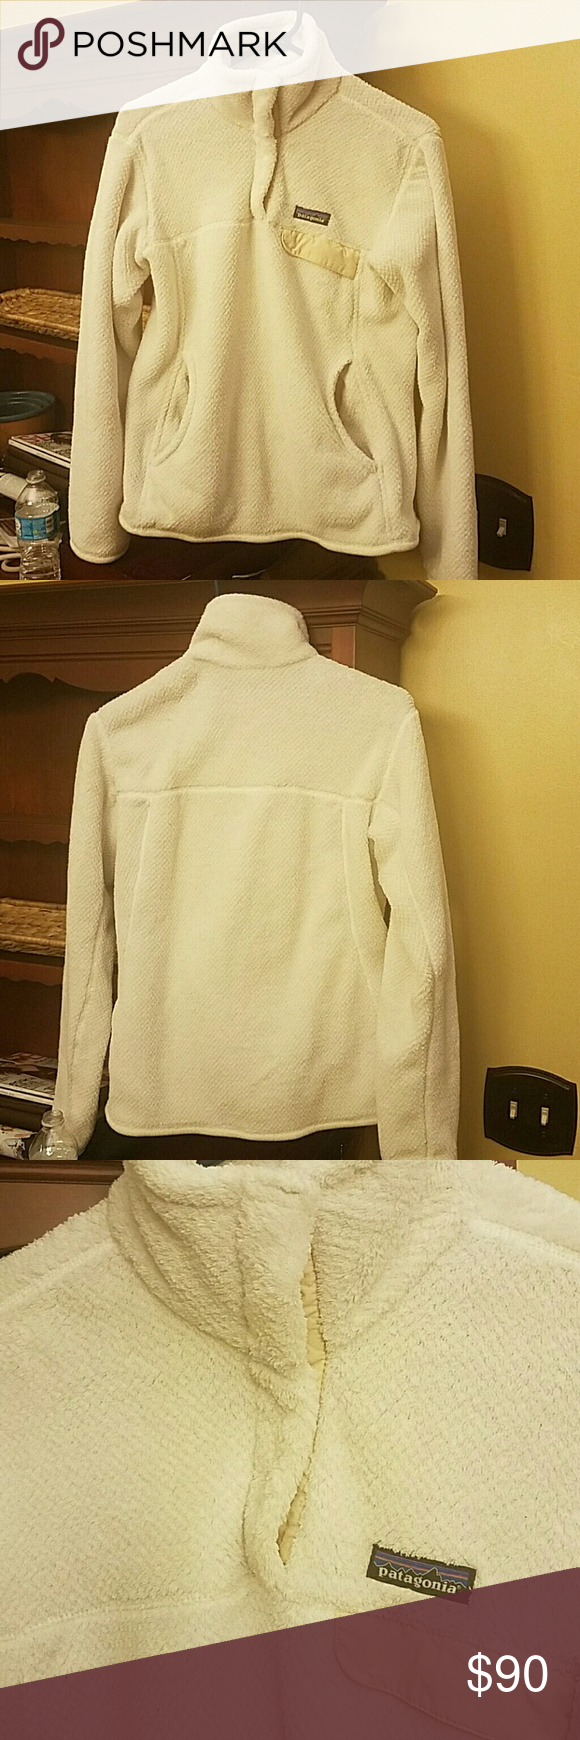 Patagonia fleece pullover Excellent condition Patagonia 3/4 button fleece pullover Patagonia Jackets & Coats